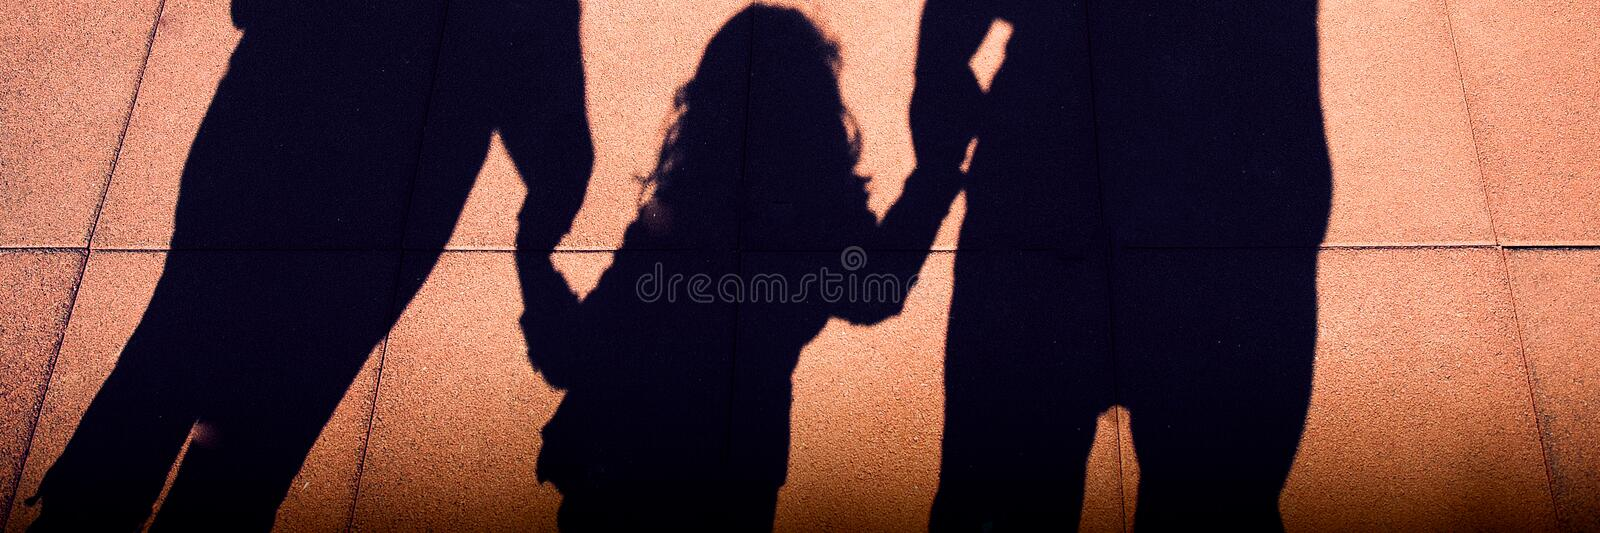 Family silhouettes stock photography